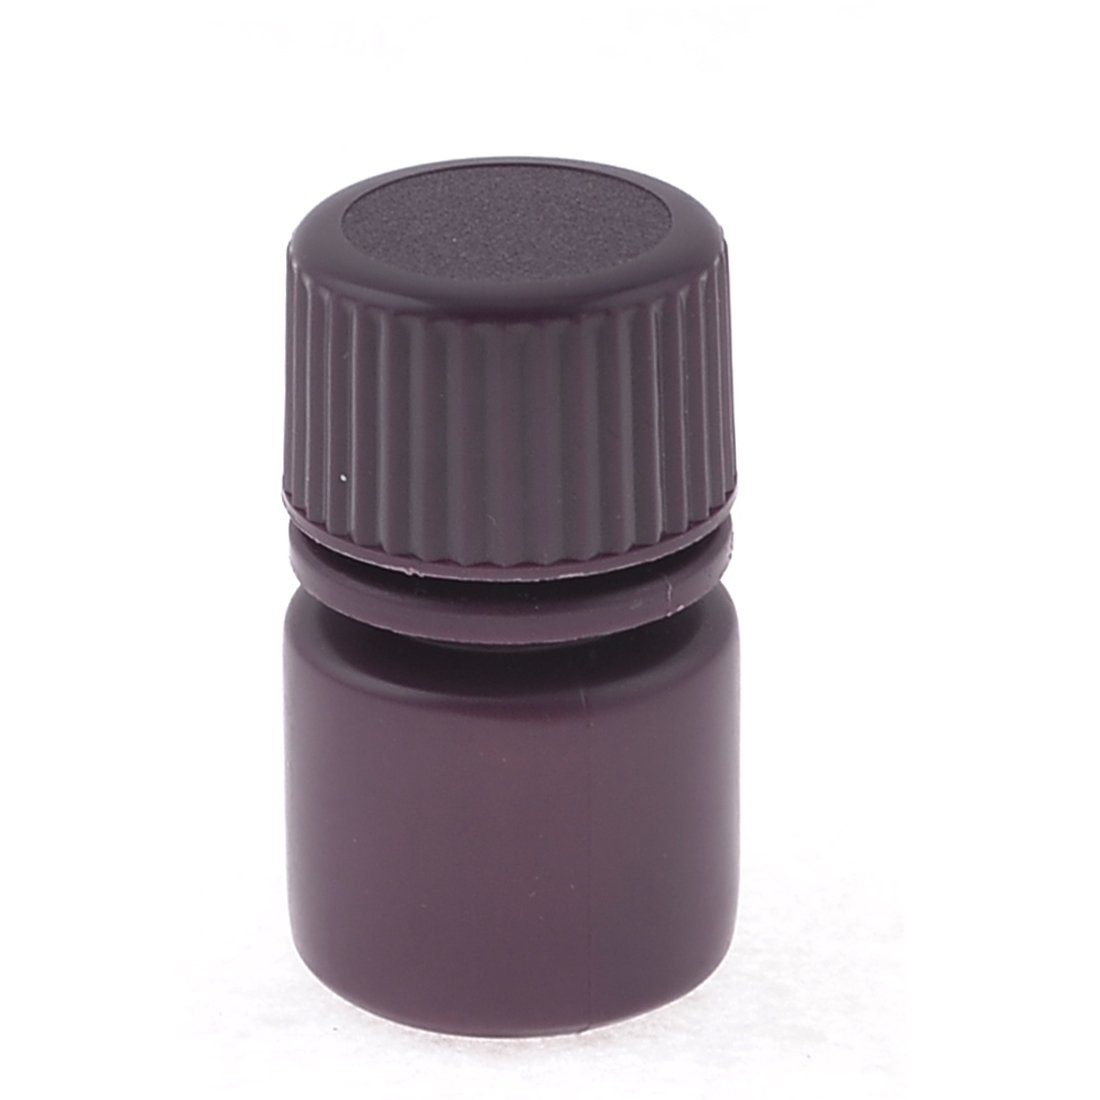 uxcell Screw Cap Cover 5ml Liquid Chemicals Storage Reagent Bottle Maroon